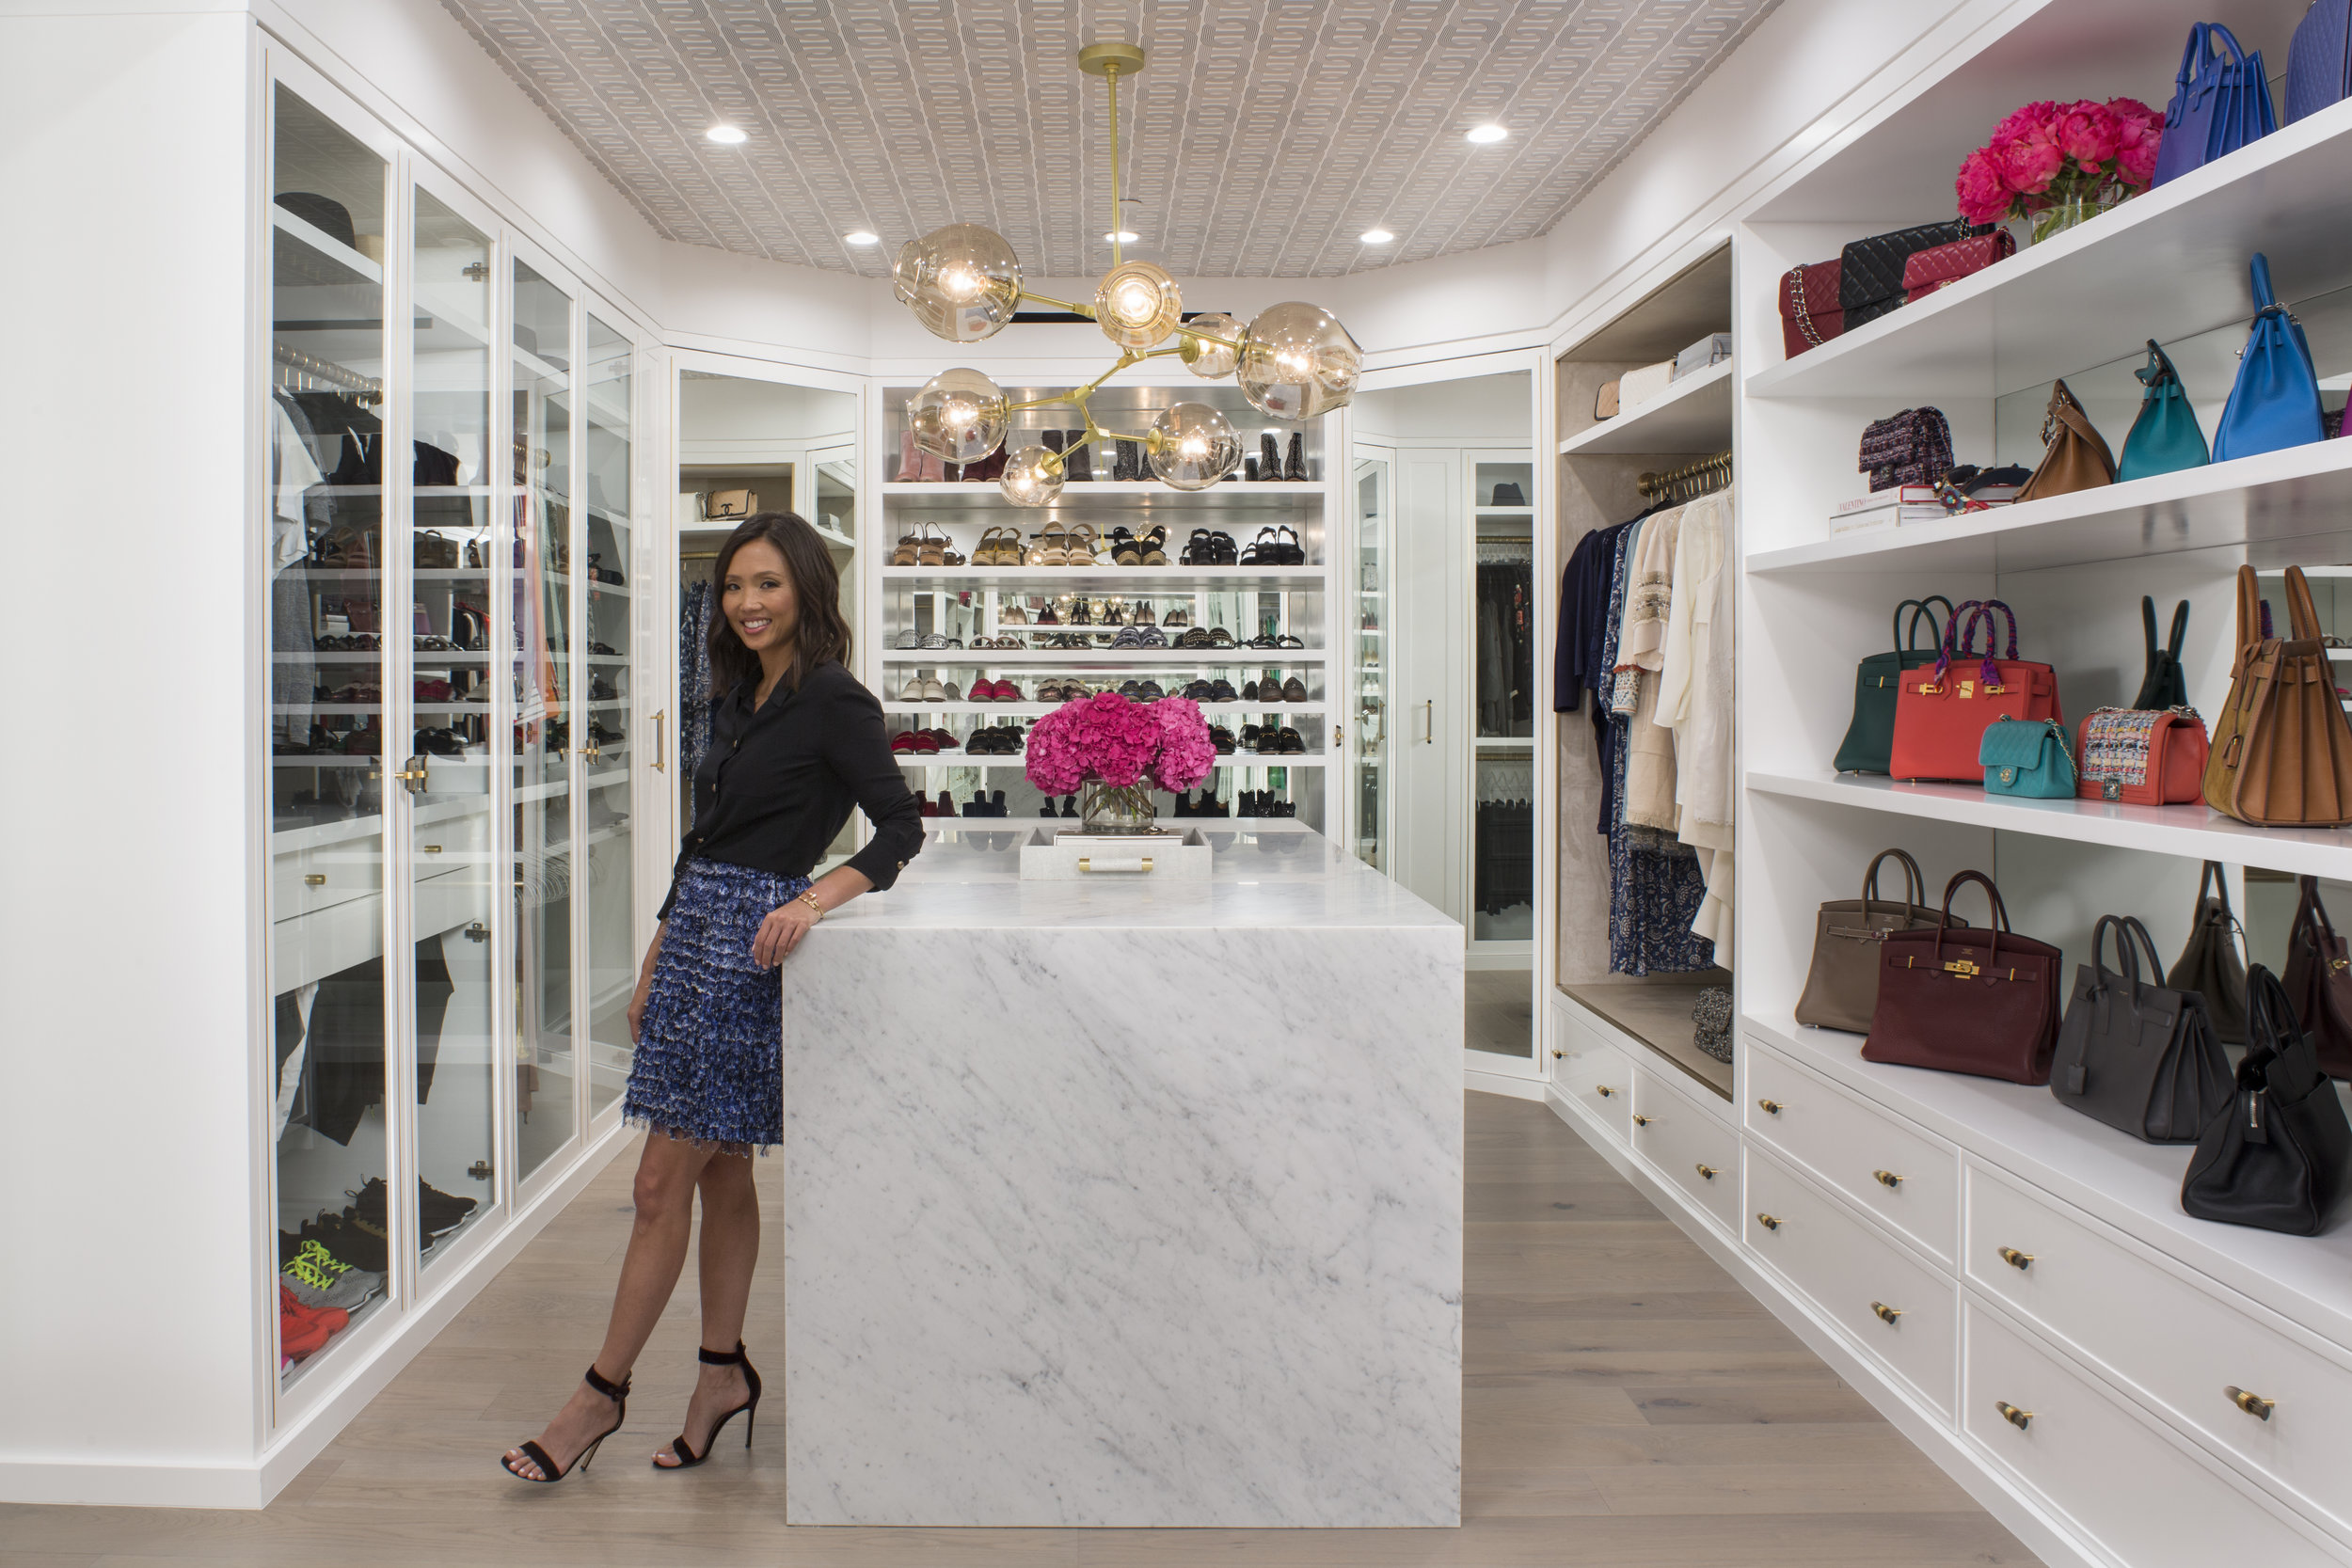 DON'T FORGET TO VOTE FOR THIS COLORFUL COLLECTOR'S CLOSET AS YOUR CONTEMPORARY DESIGN FAVORITE AT LUXEMAGAZINE.COM!